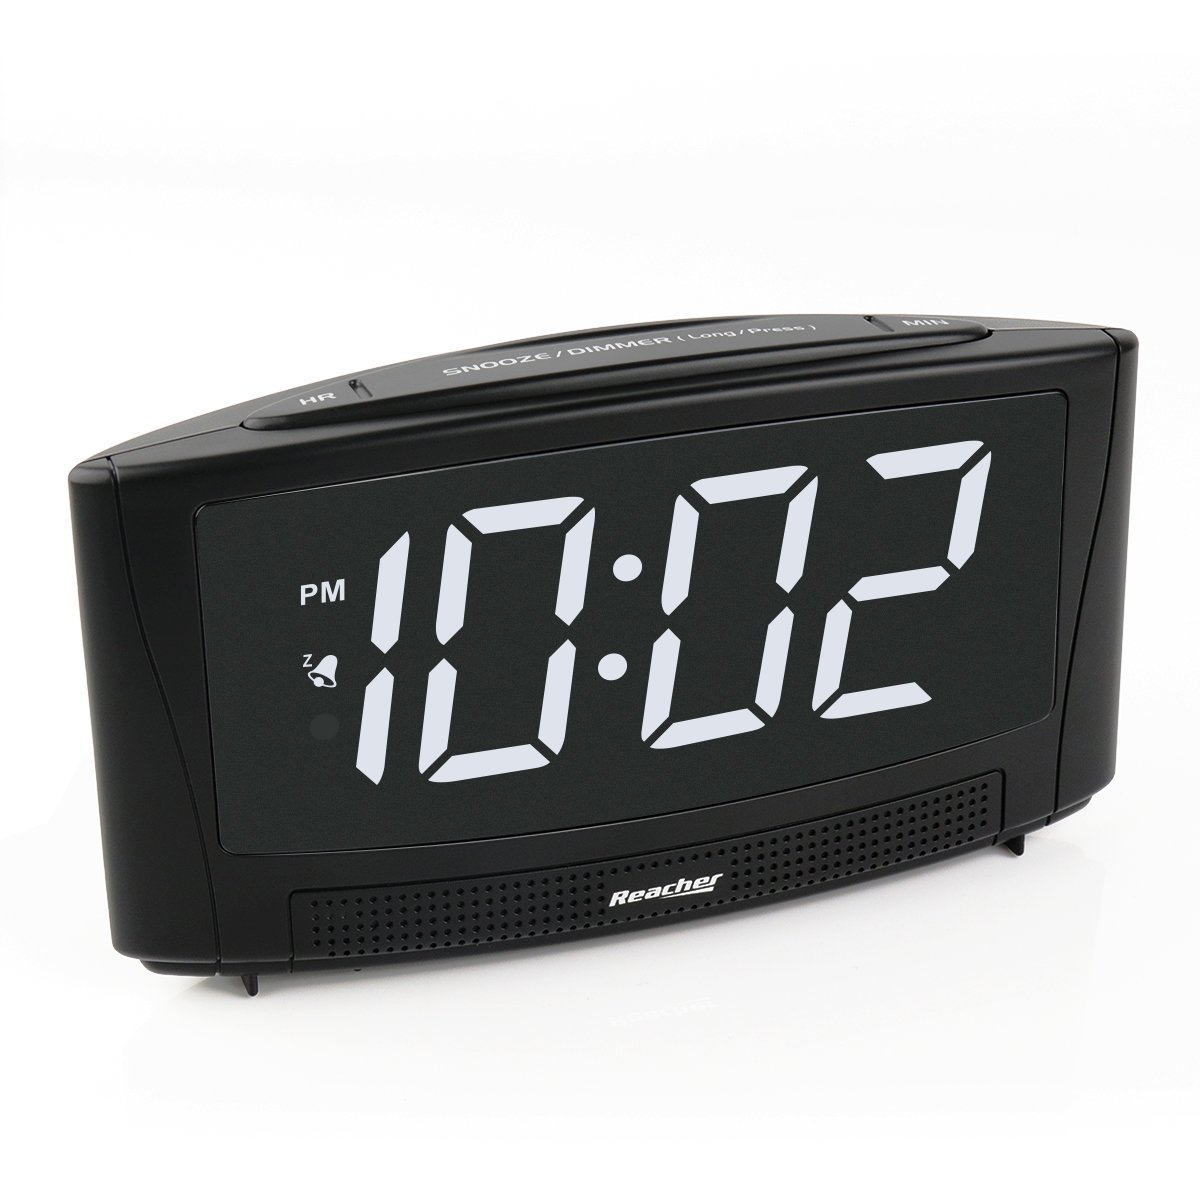 ReacherDigitalAlarmClock with USB Charger Port 6''Large Electric LED Display SimpleOperation and Easy Snooze Outlet Powered forBedrooms Bedside Phone iPhone - Black